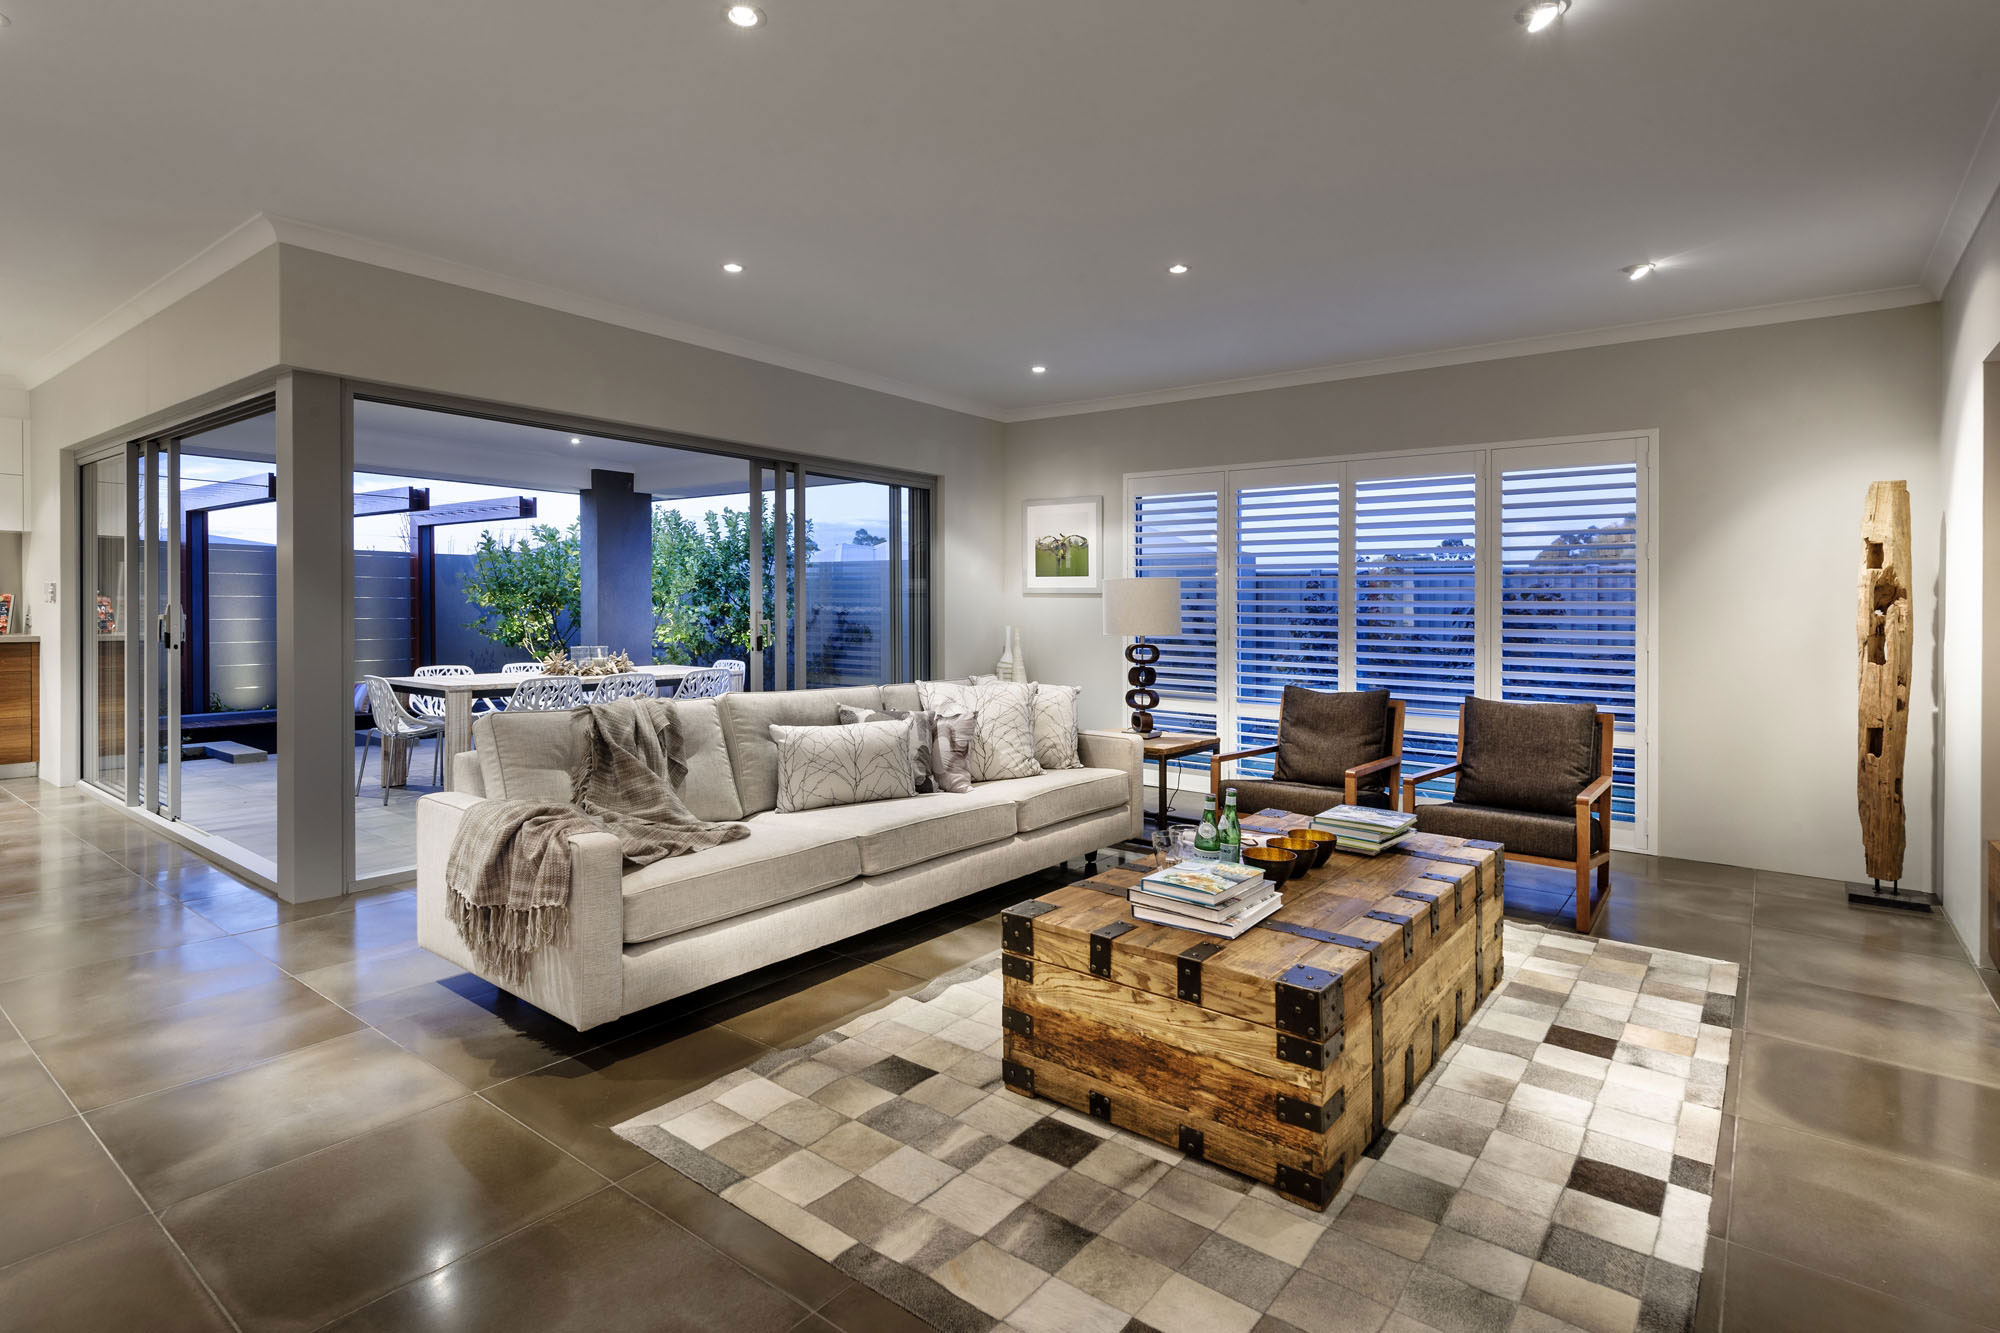 Rustic Wood Coffee Table, Sofa, Living Room, Modern Home in Wandi, Perth